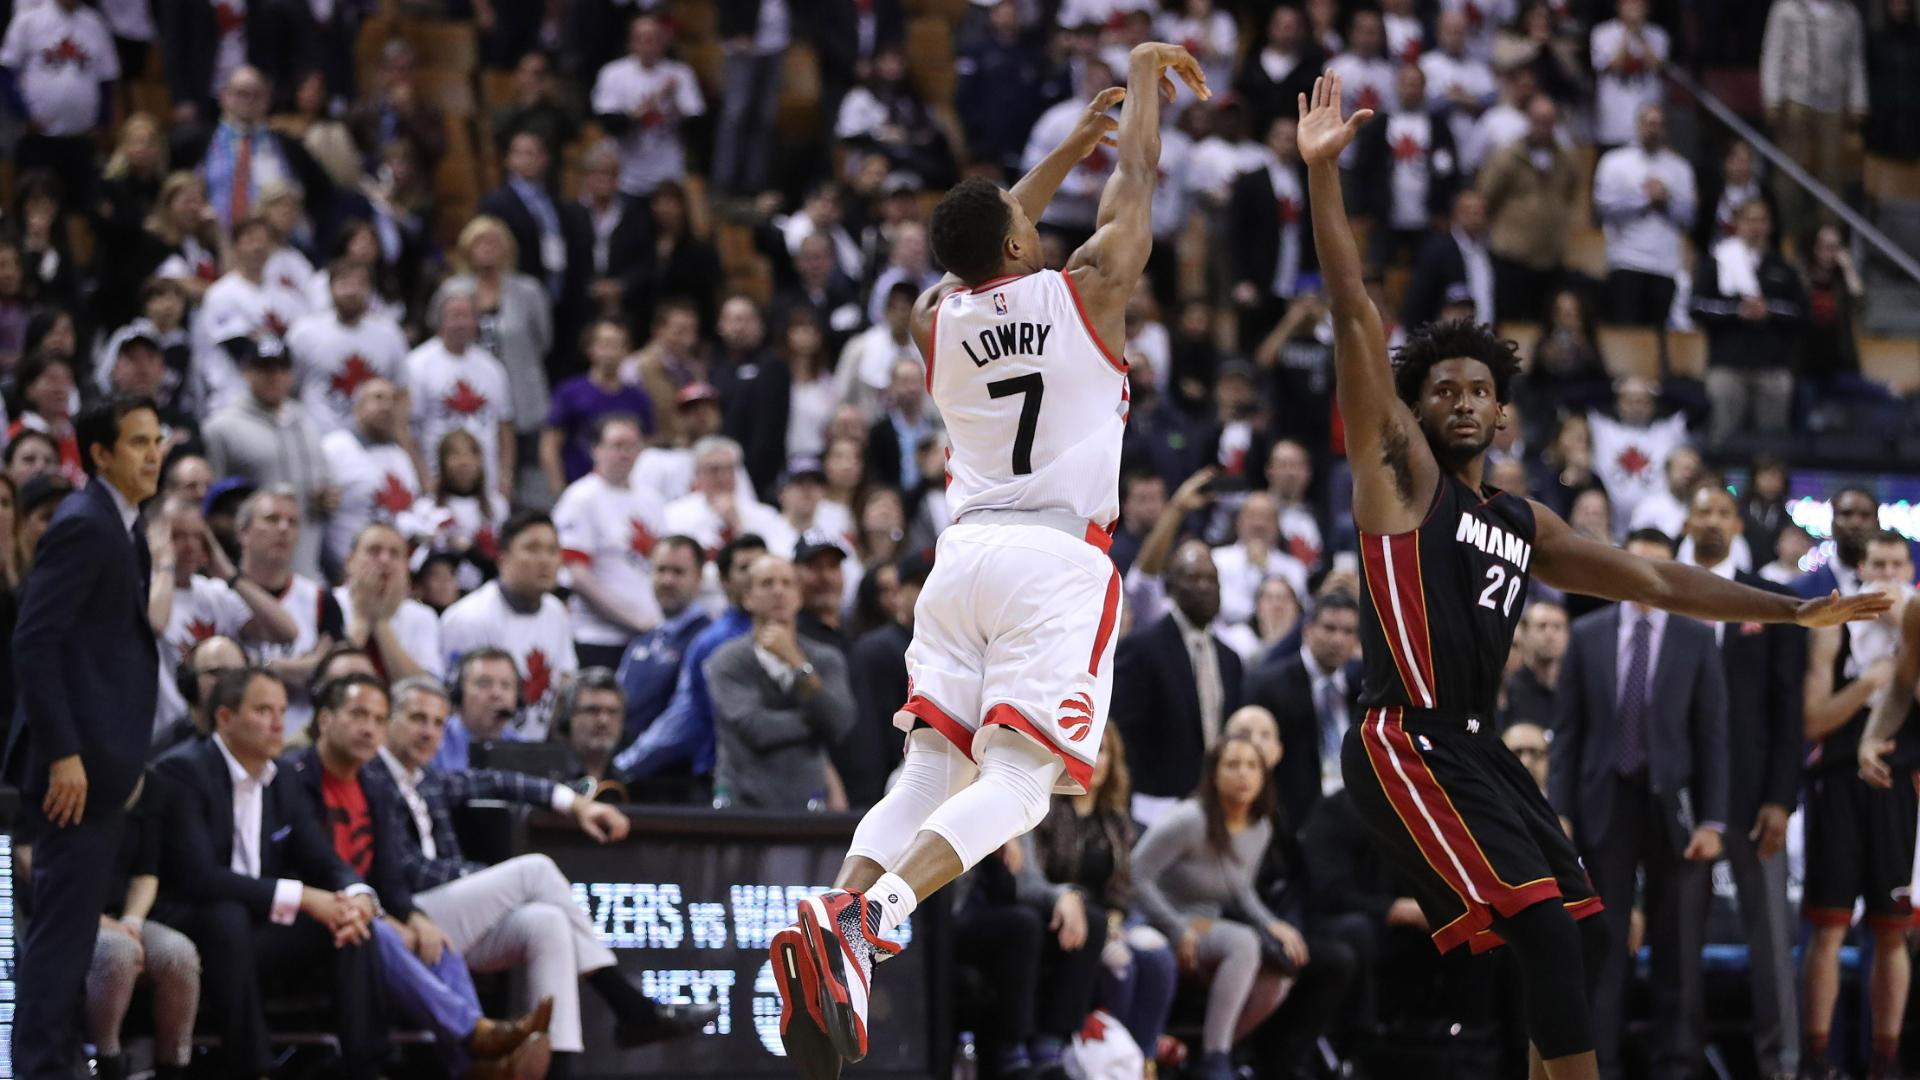 Lowry's half-court heave forces OT, Toronto erupts